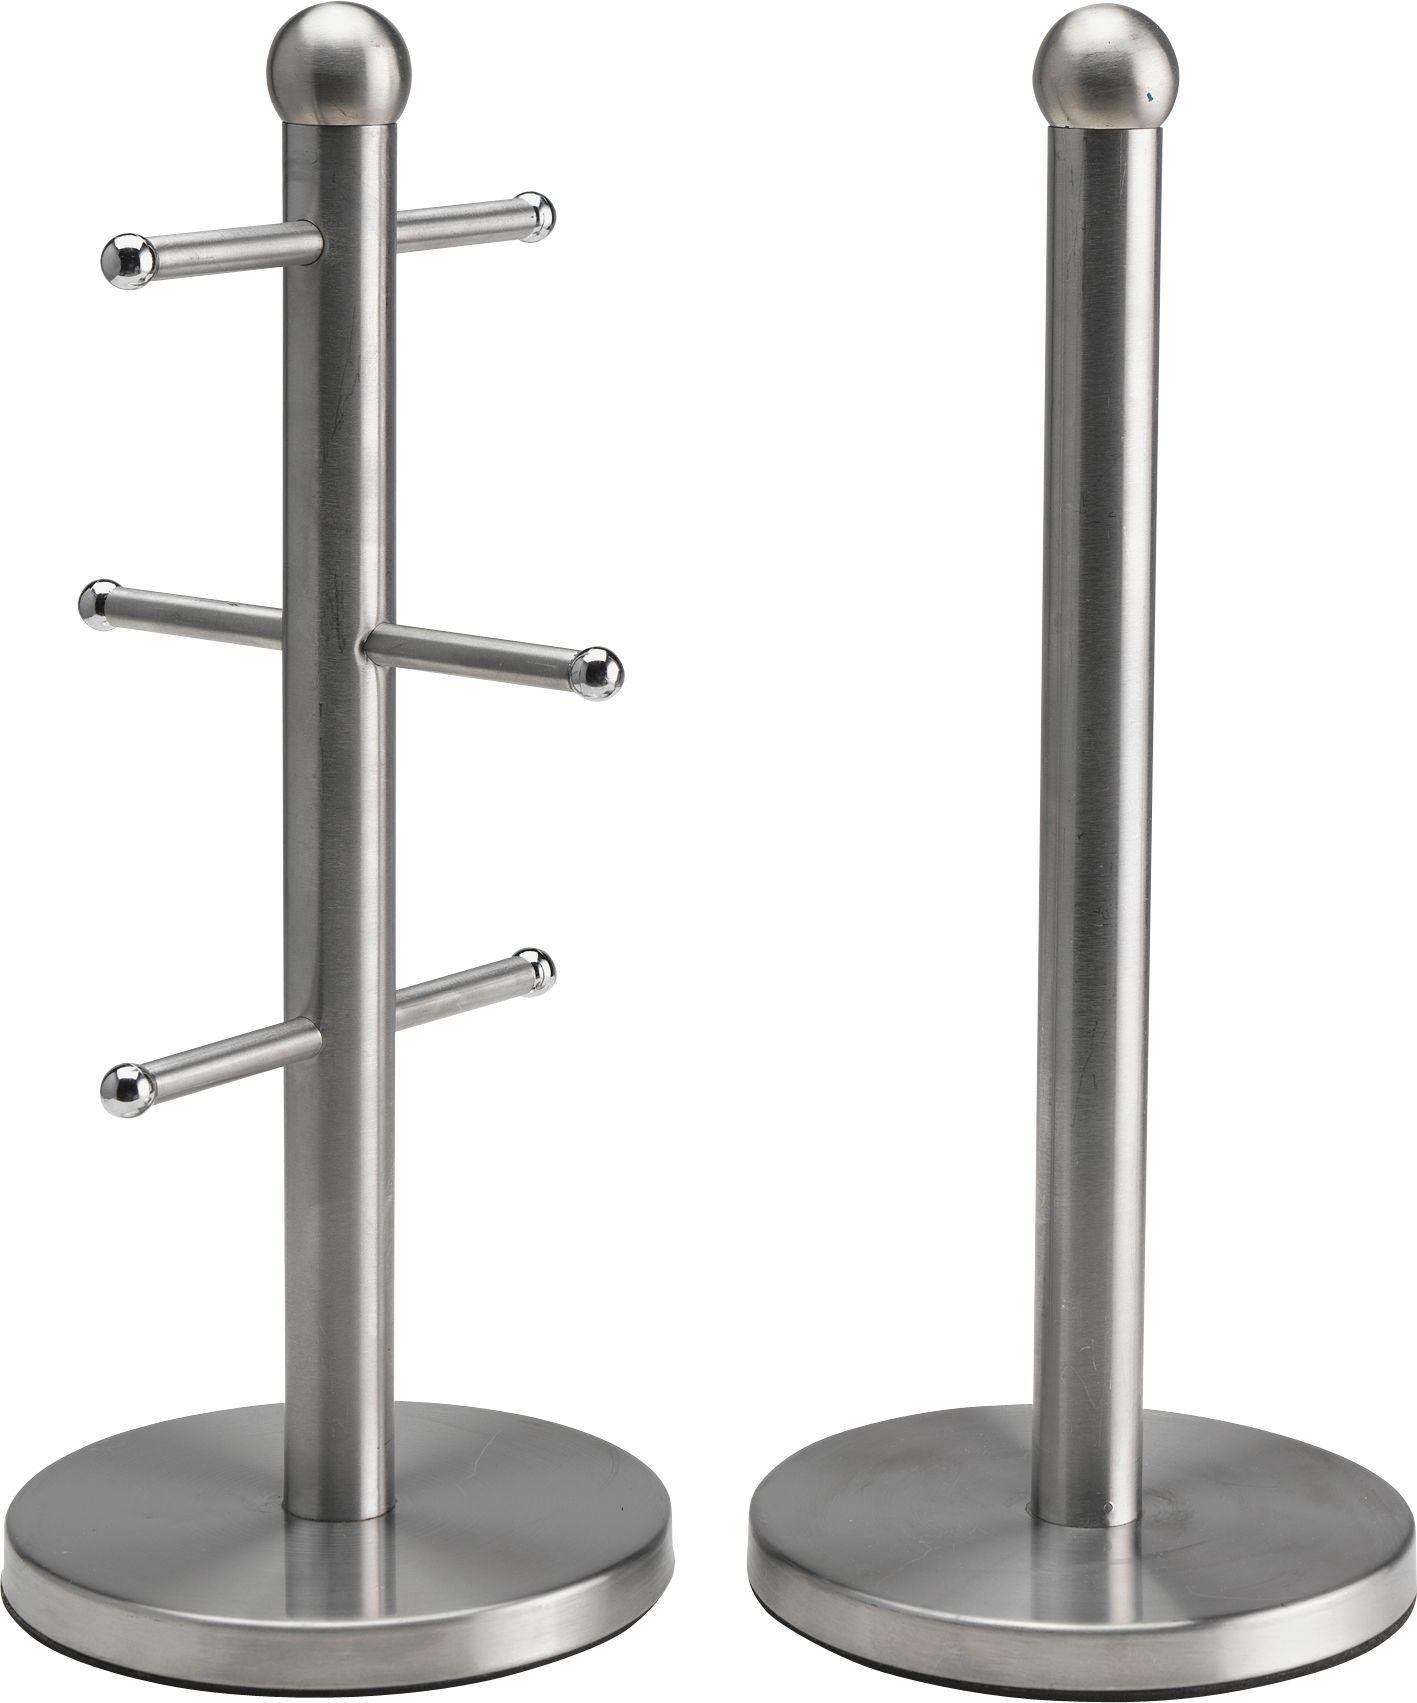 Image of HOME - Satin Stainless Steel Mug Tree-Kitchen Towel Holder Set